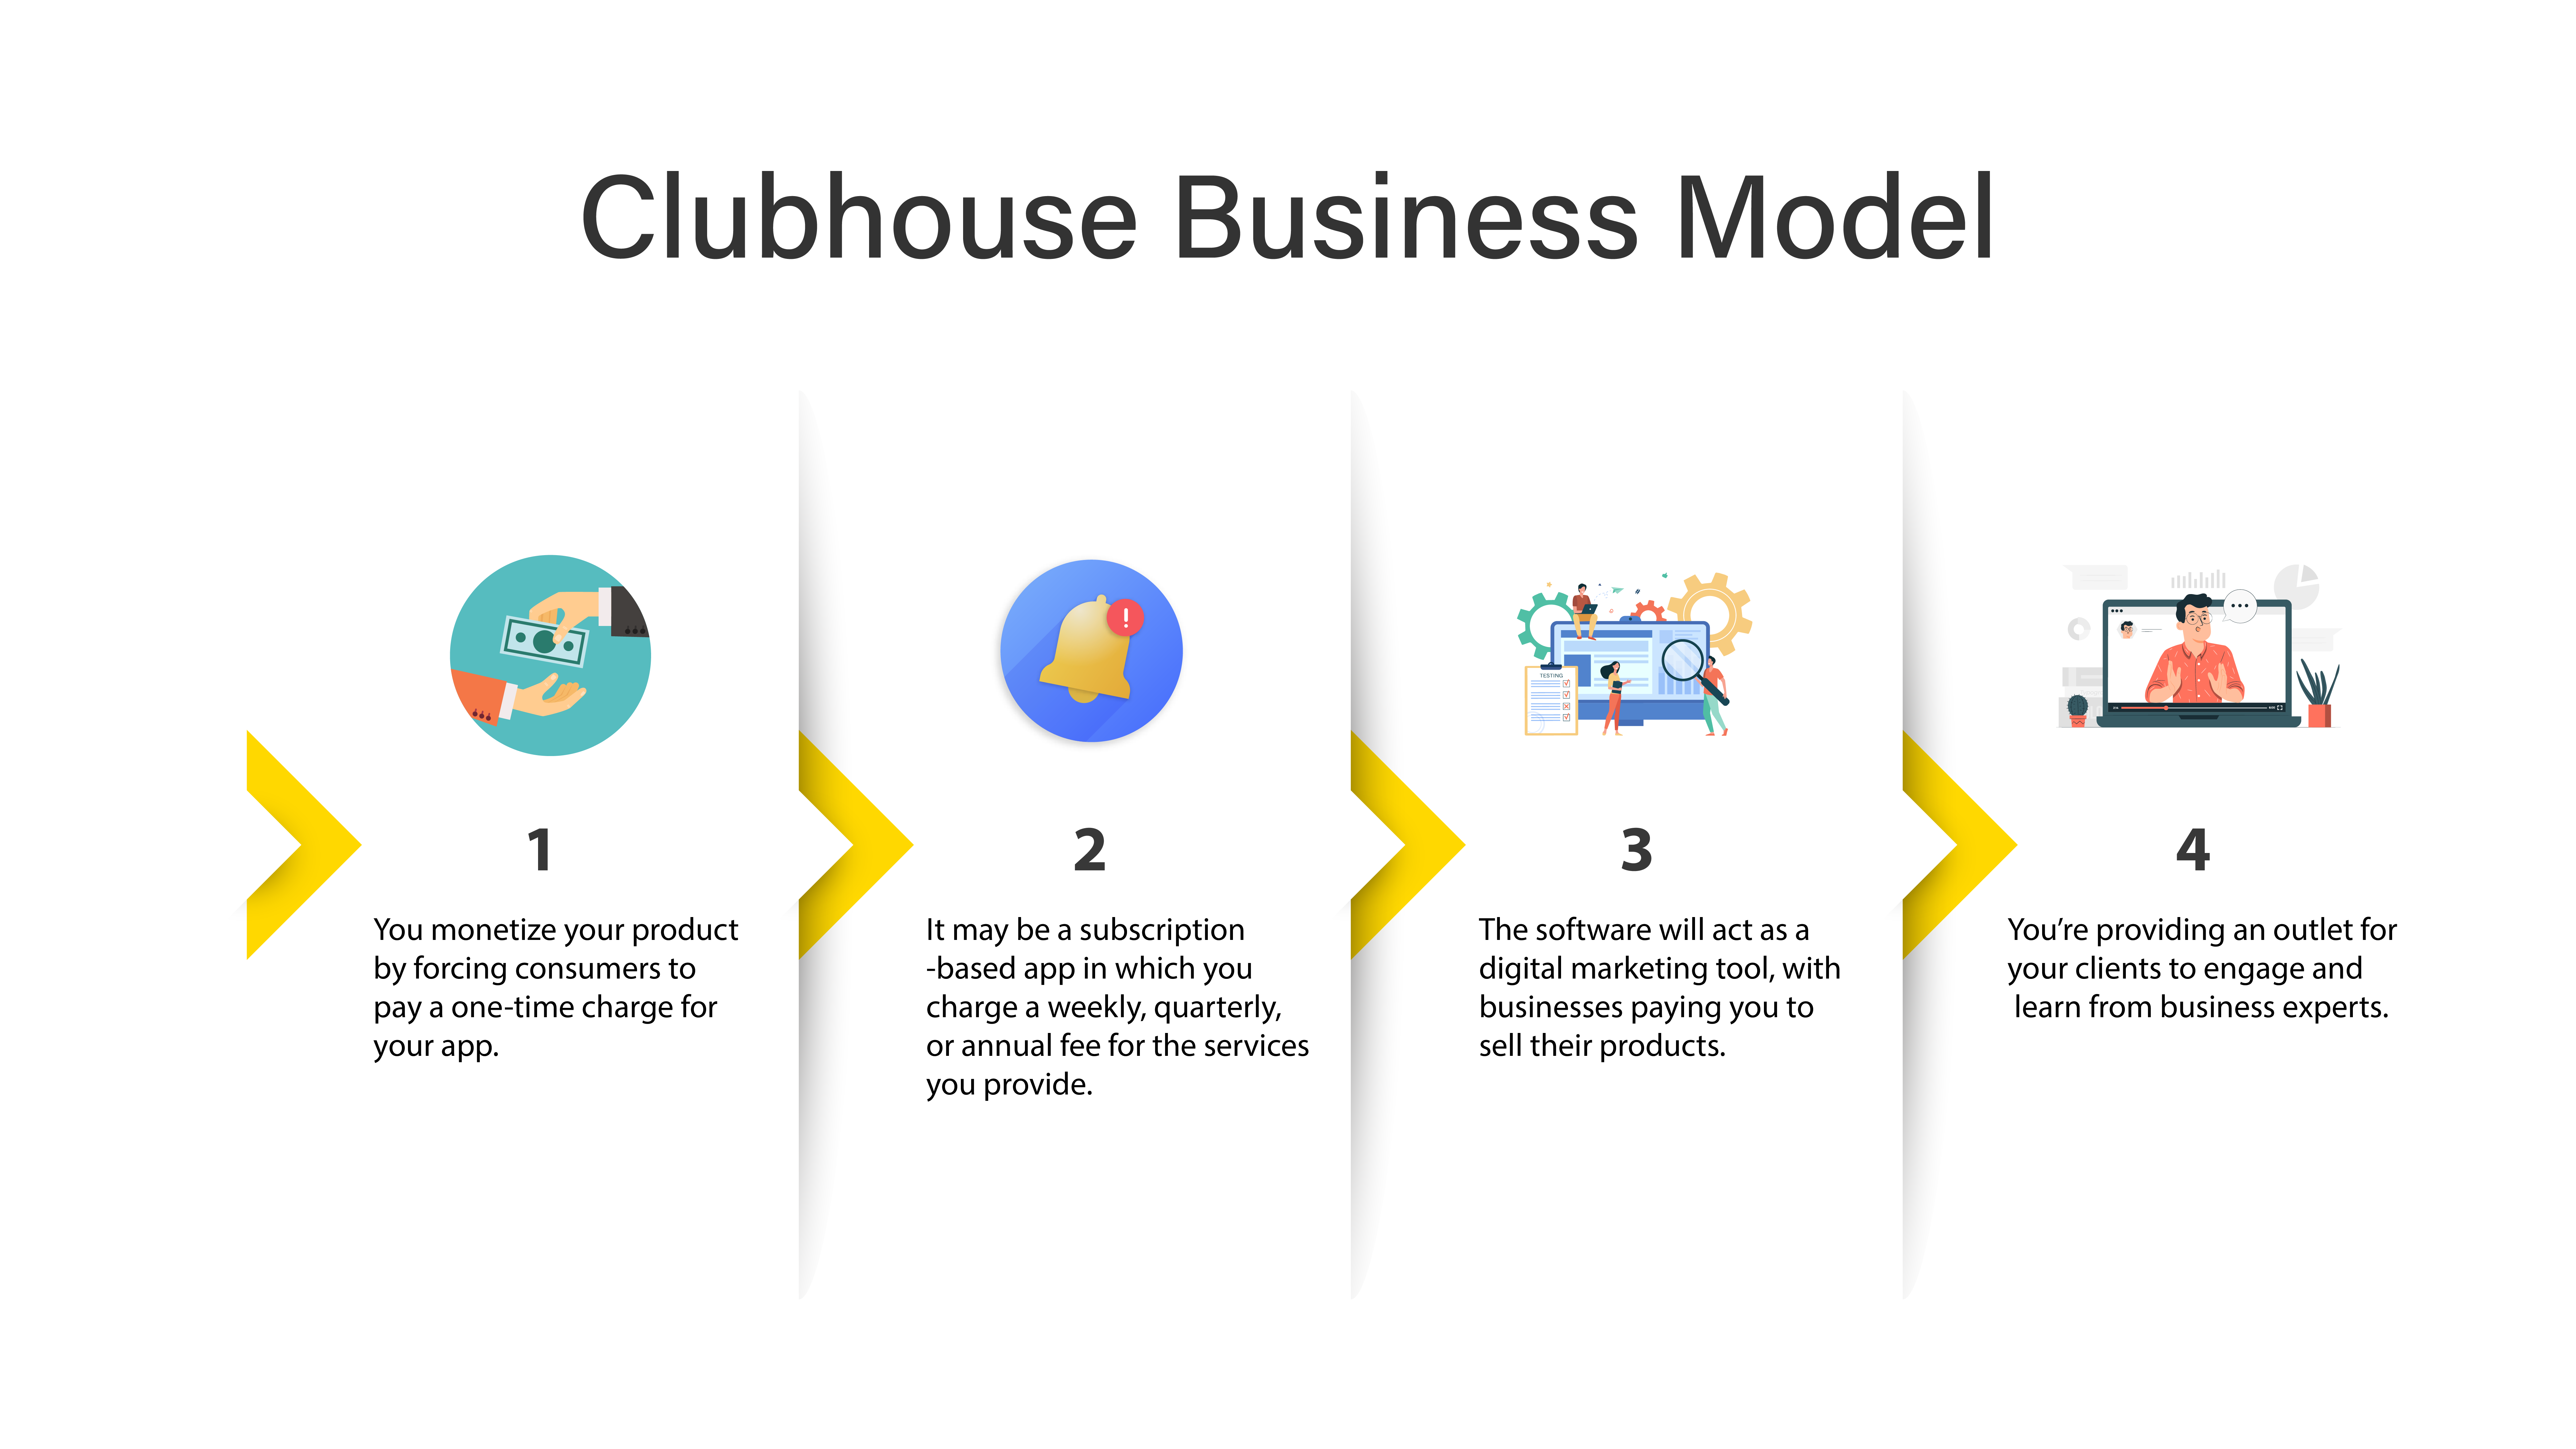 Clubhouse Business model